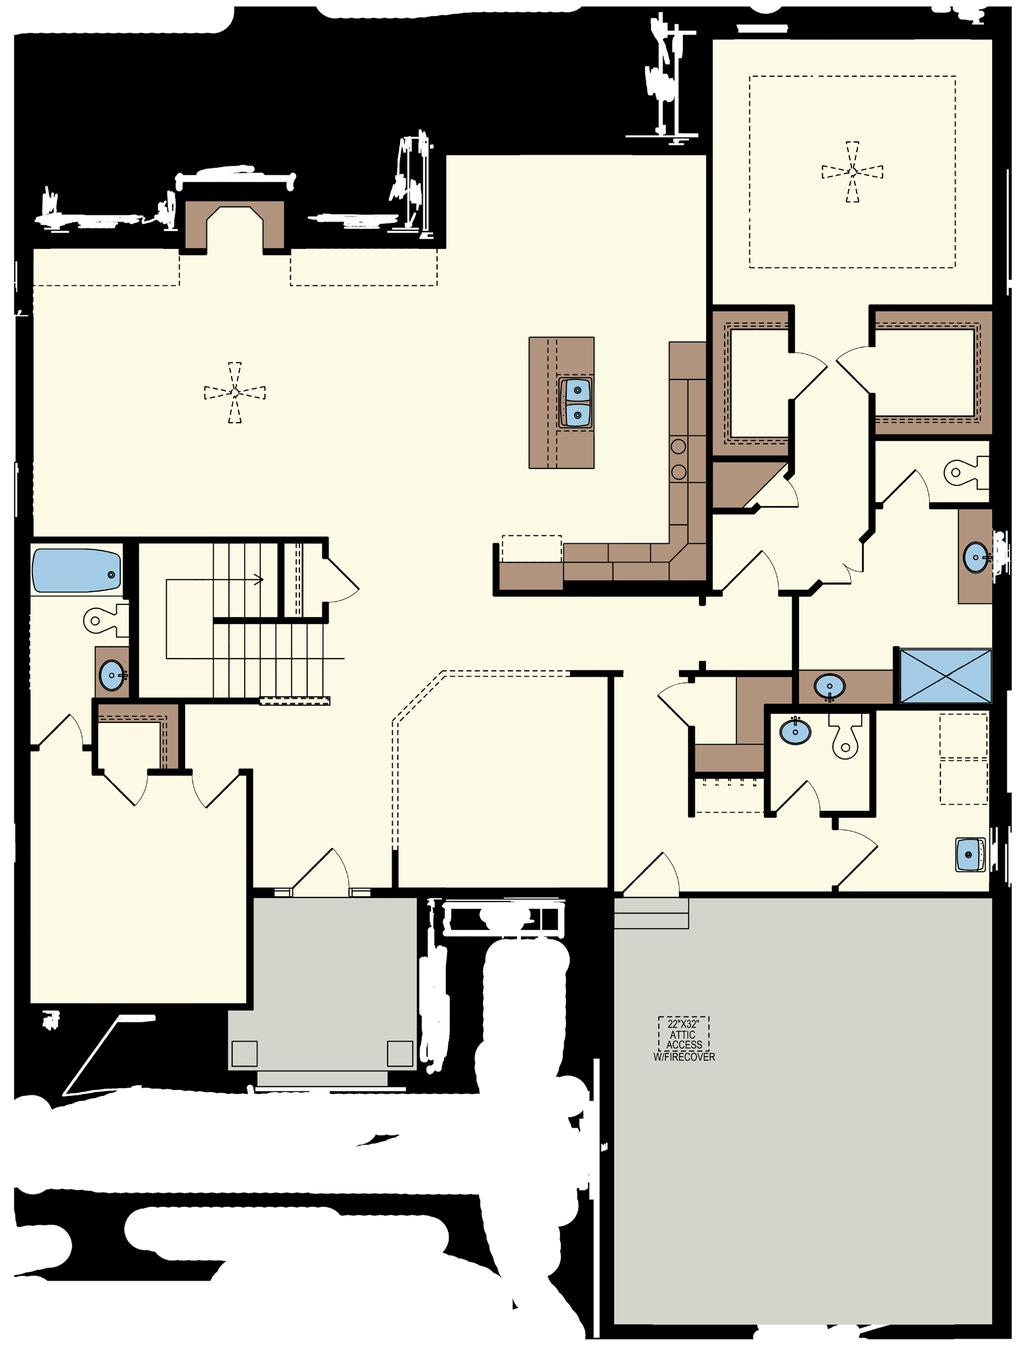 -CLASSIC FLOORPLAN - w/ Basement Foyer: 7 x 10 Great Room: 22 x 15 Nook: 13 x 9 Kitchen: 13 x 13 Flex Room: 11 x 11 Master Bedroom: 14 x 14